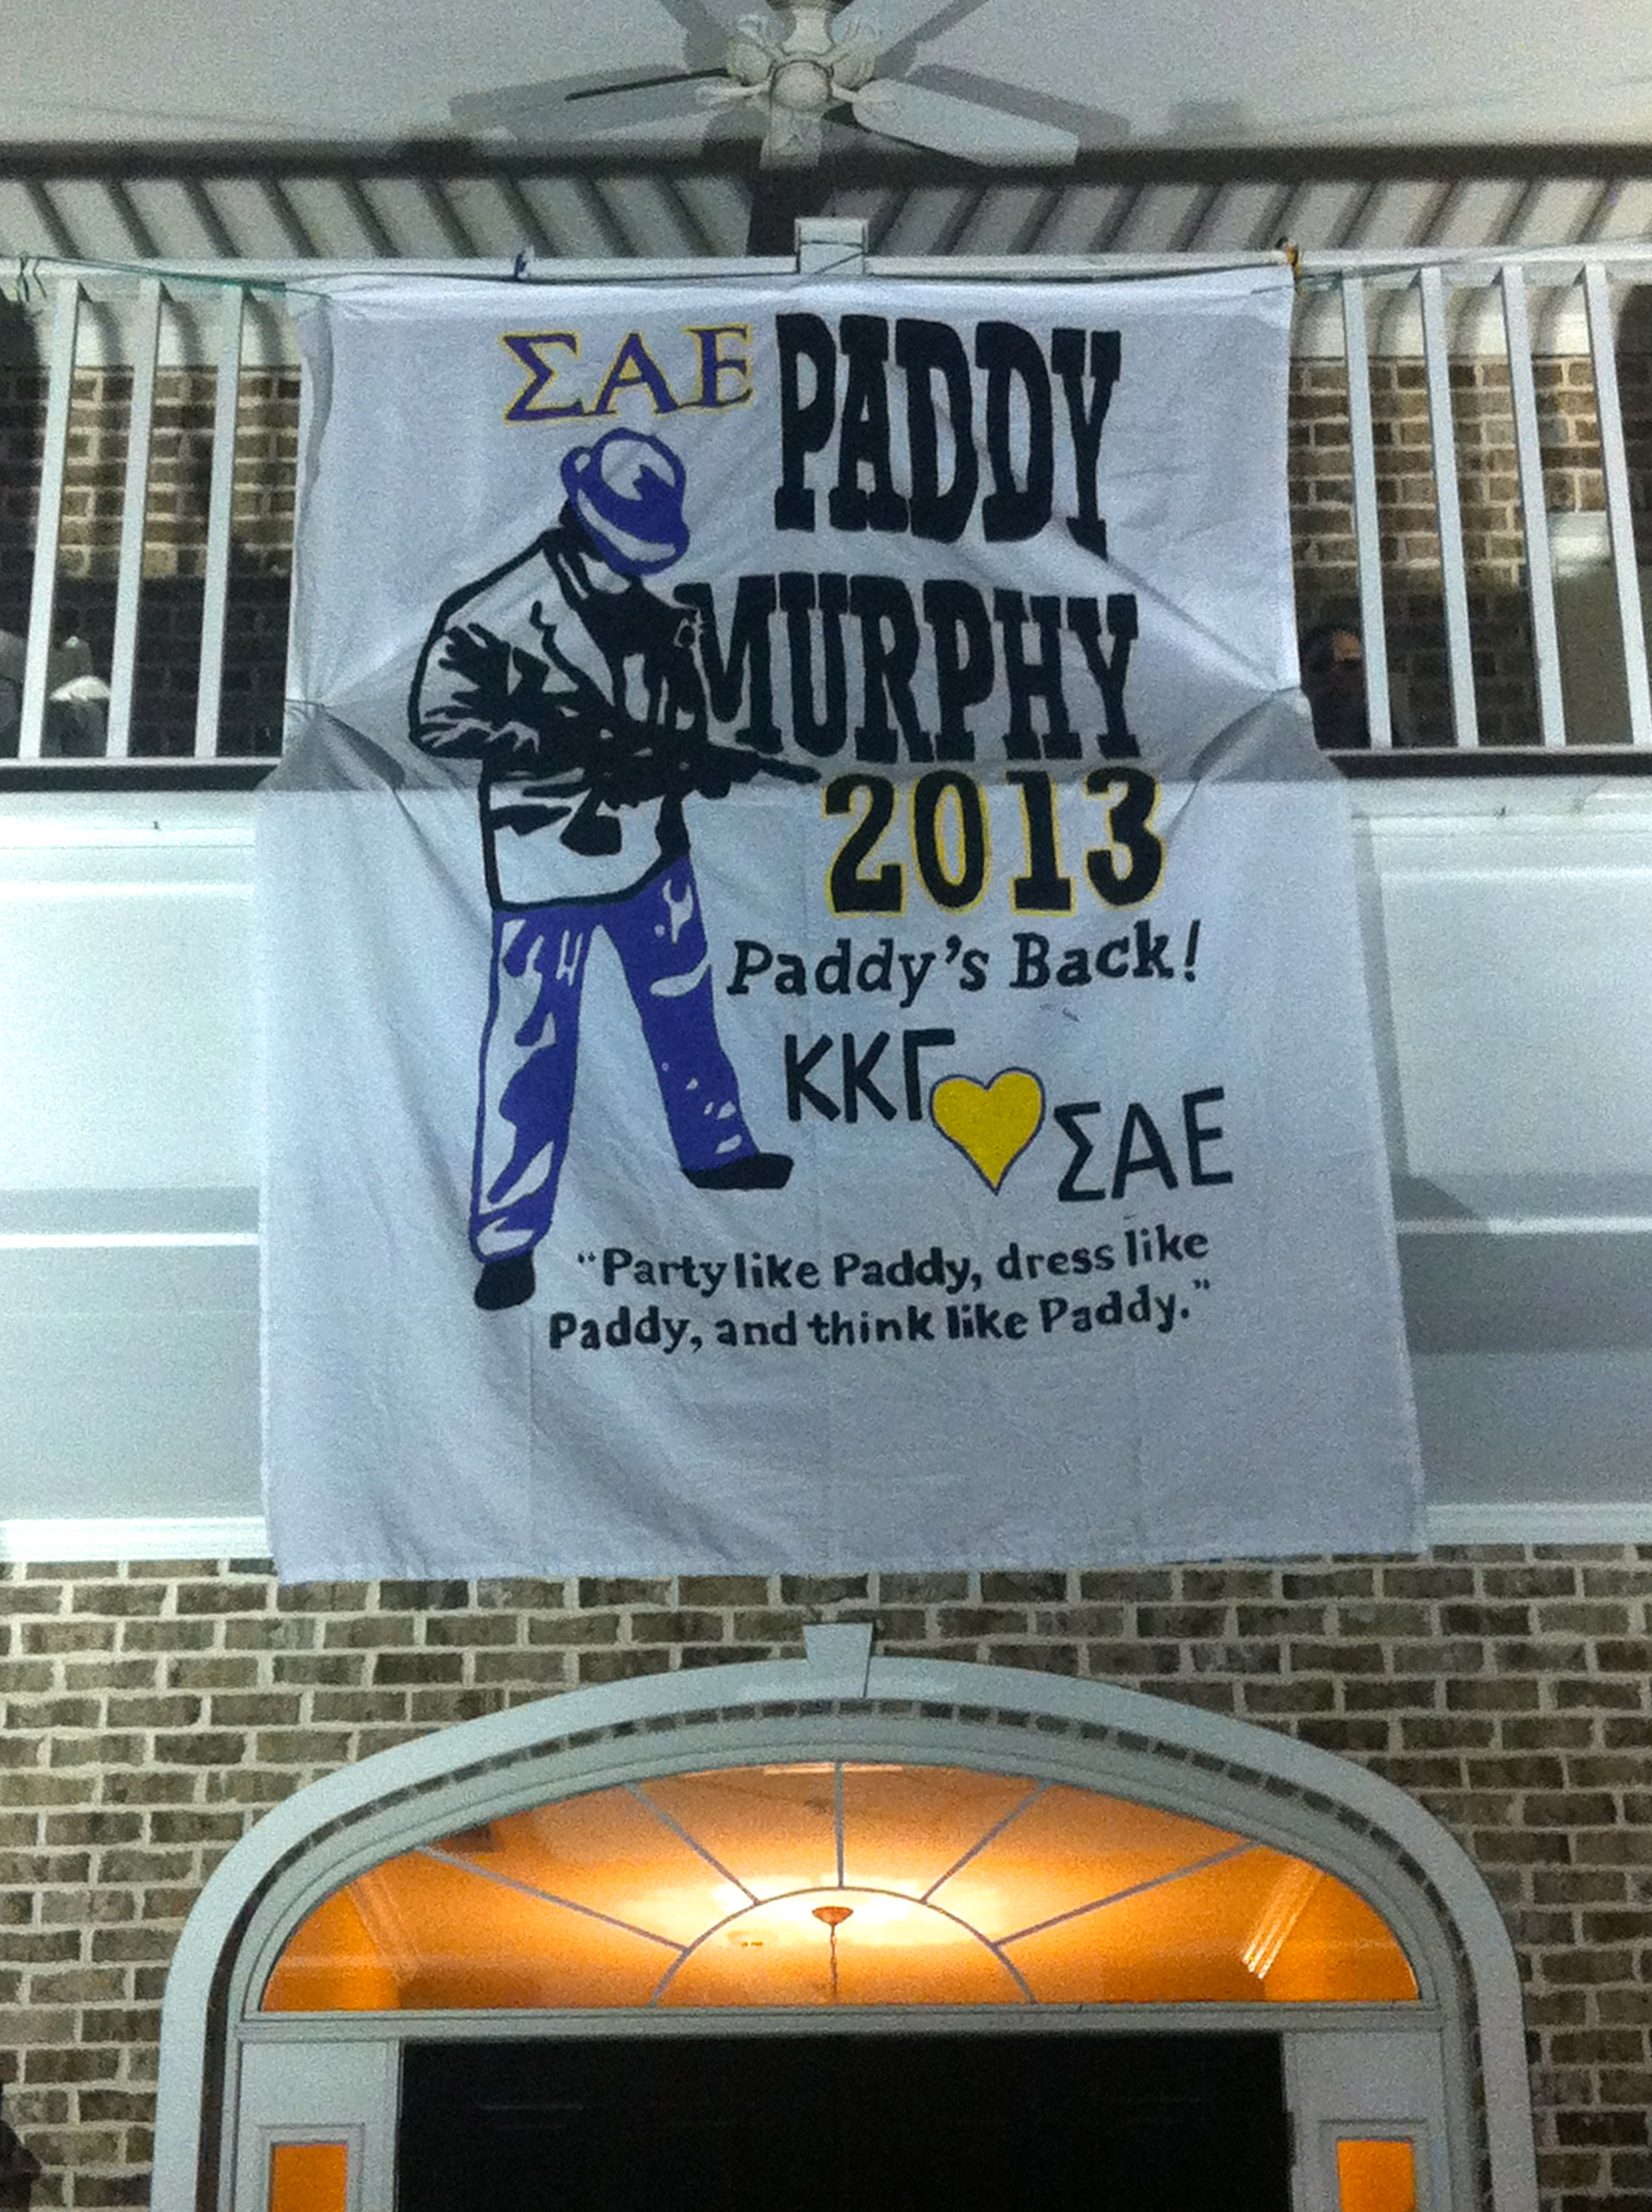 ΚΚΓ ❤'s ΣΑΕ and Paddy Murphy! TSM.